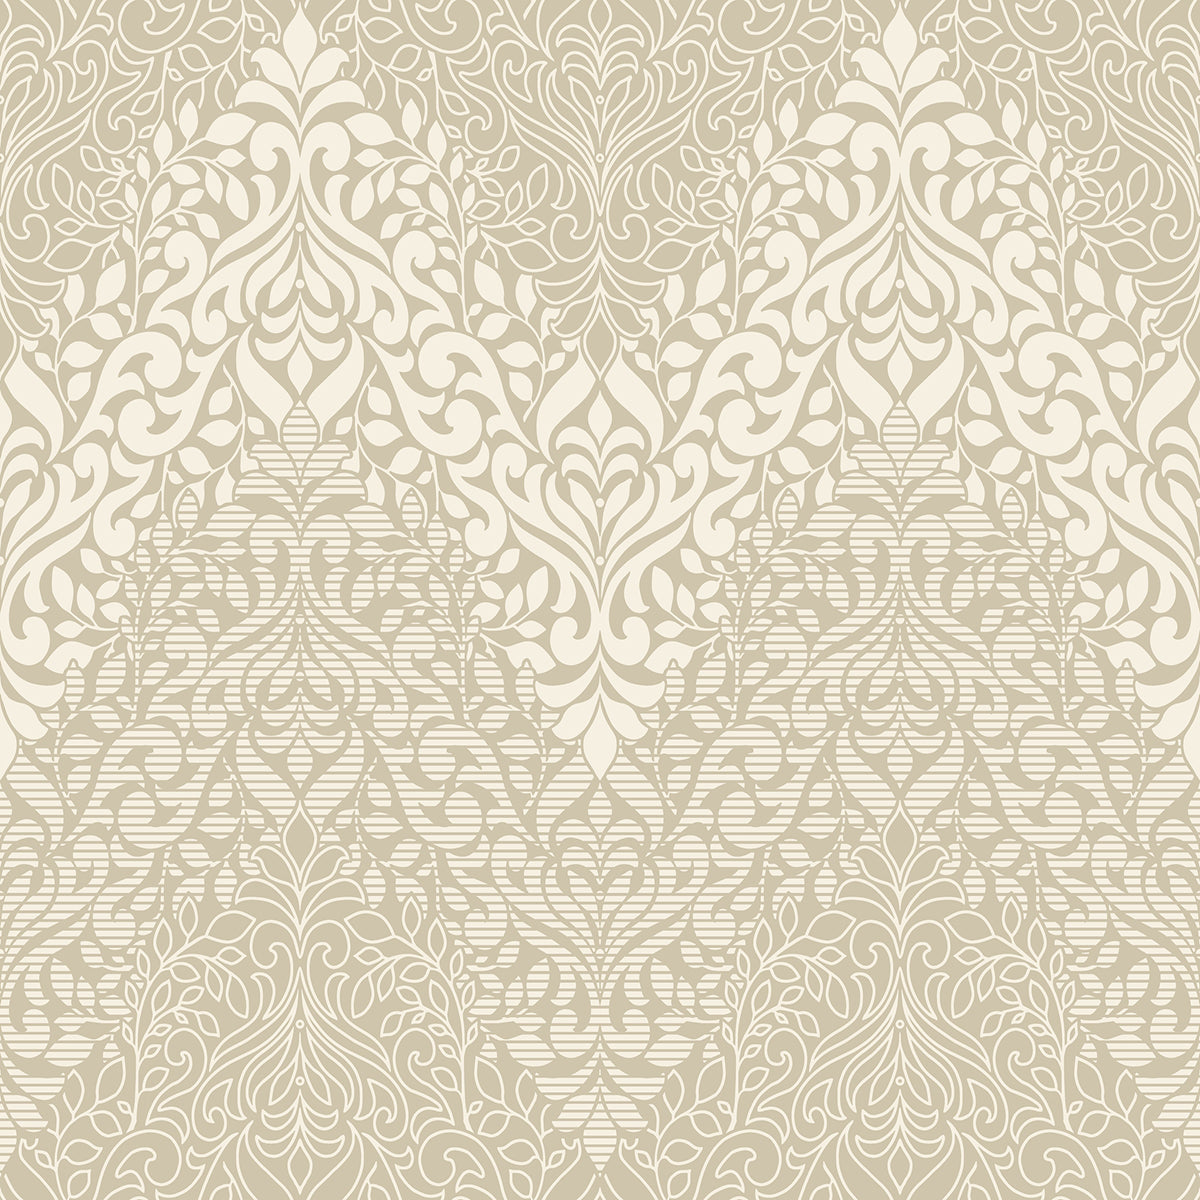 Candice Olson Decadence Folklore Wallpaper in Creme/beige